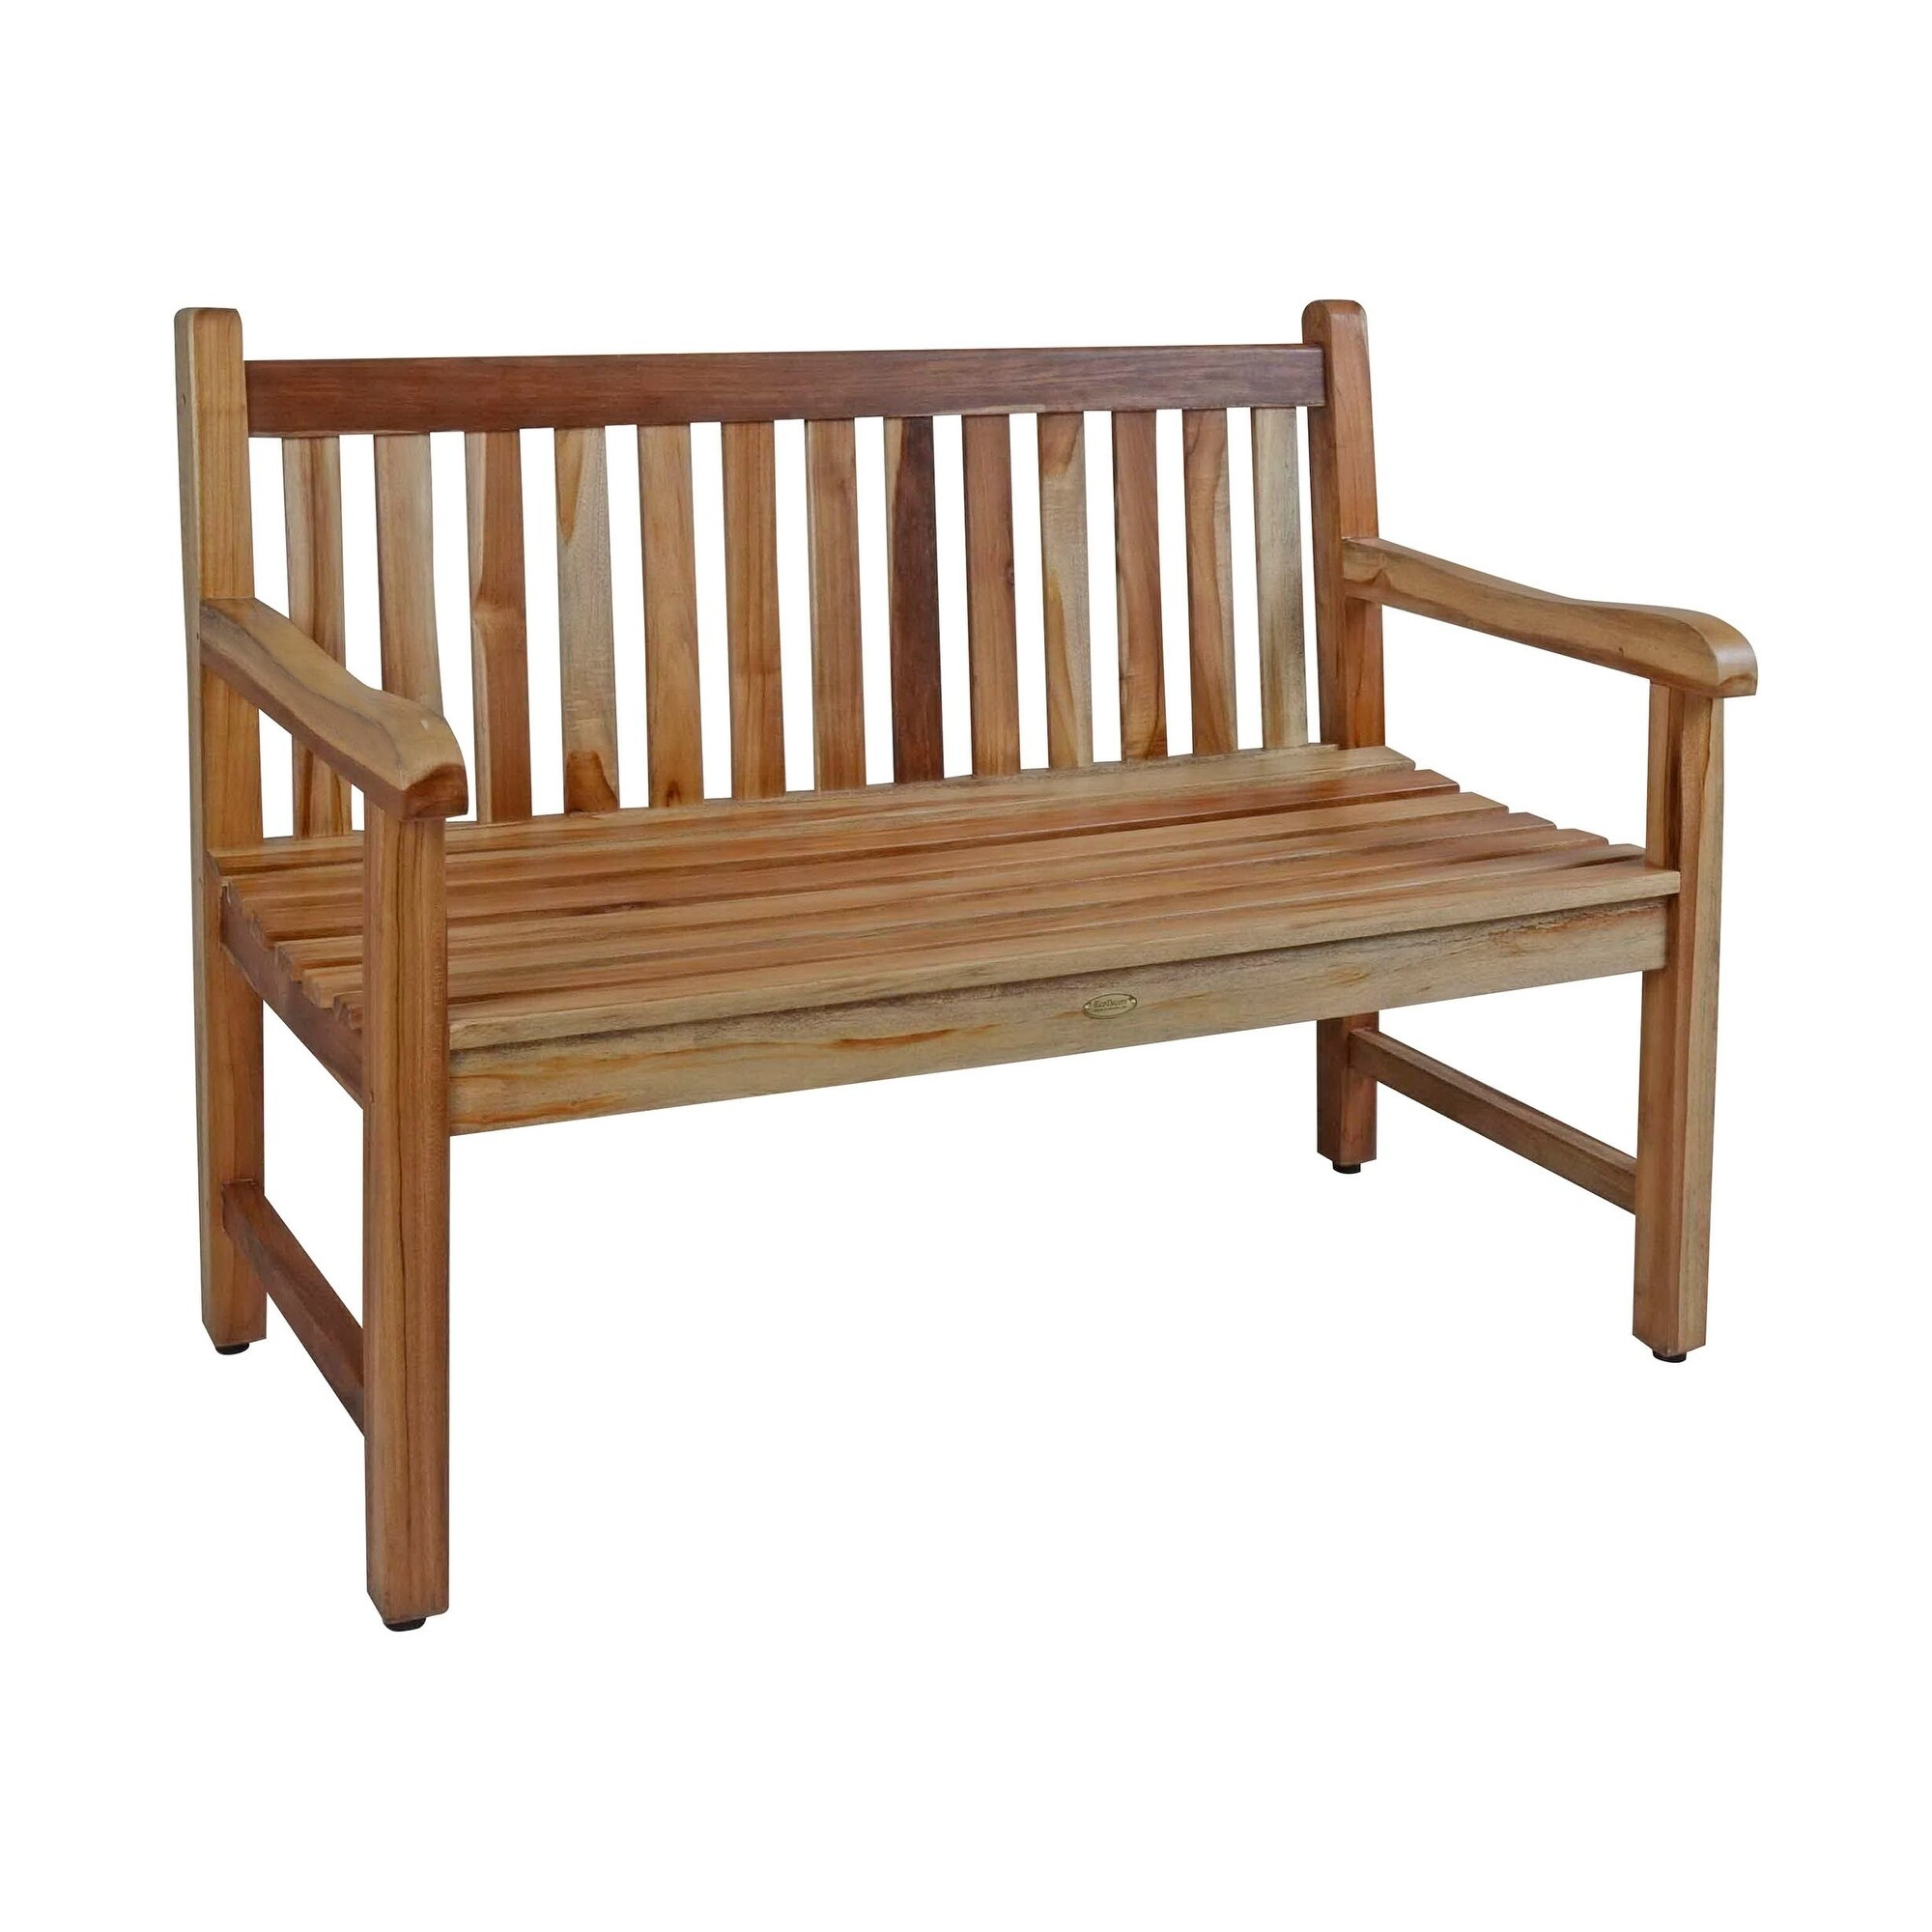 "47"" Ecodecors Hampstead Heath Indoor Or Outdoor Solid Teak Bench In Earthyteak Finish Within Hampstead Teak Garden Benches (View 3 of 25)"